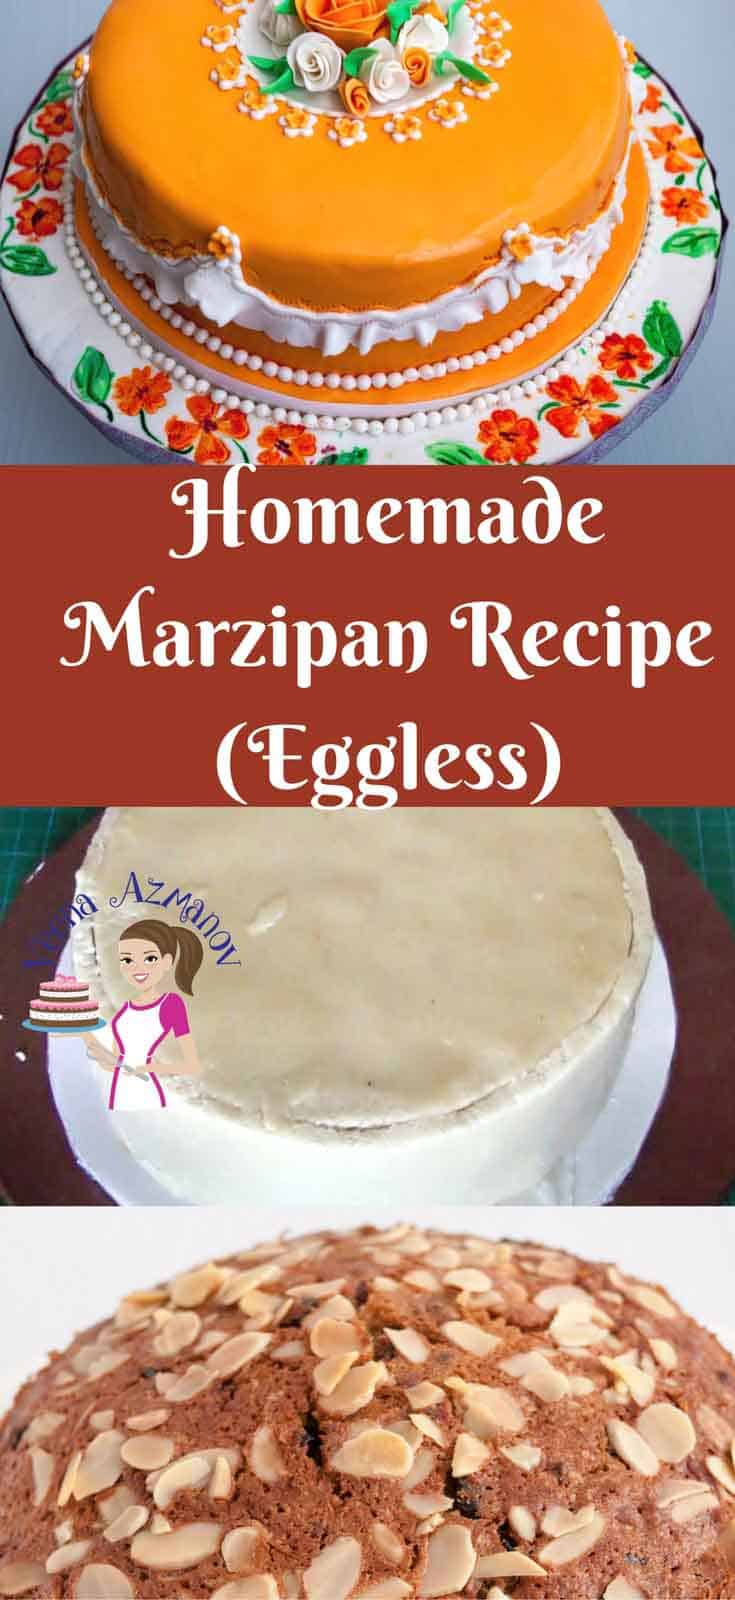 Marzipan or Almond Paste is very easy to make at home in 5 to 10 minutes and needs so special skills or equipment. There is so much you can do with Marzipan from adding it in baked pastry to decorating a custom cake with marzipan or even making mini marzipan treats for kids in shapes. Try adding them to your next batch of Chocolate truffles.